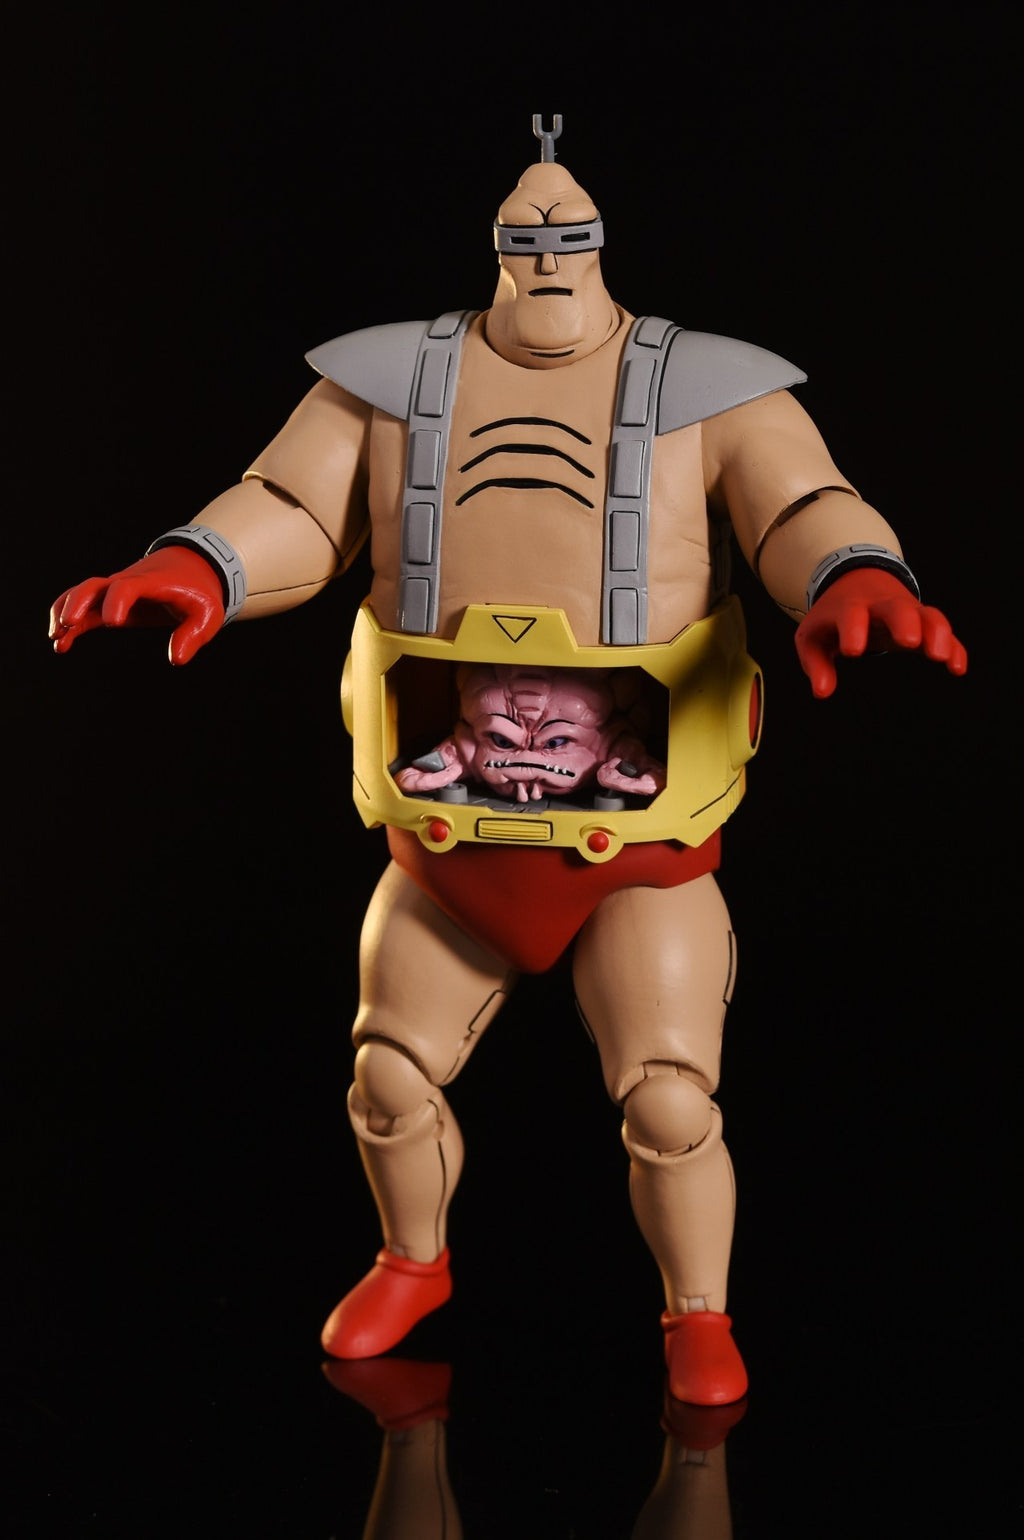 Neca TMNT - KRANG's Android body set